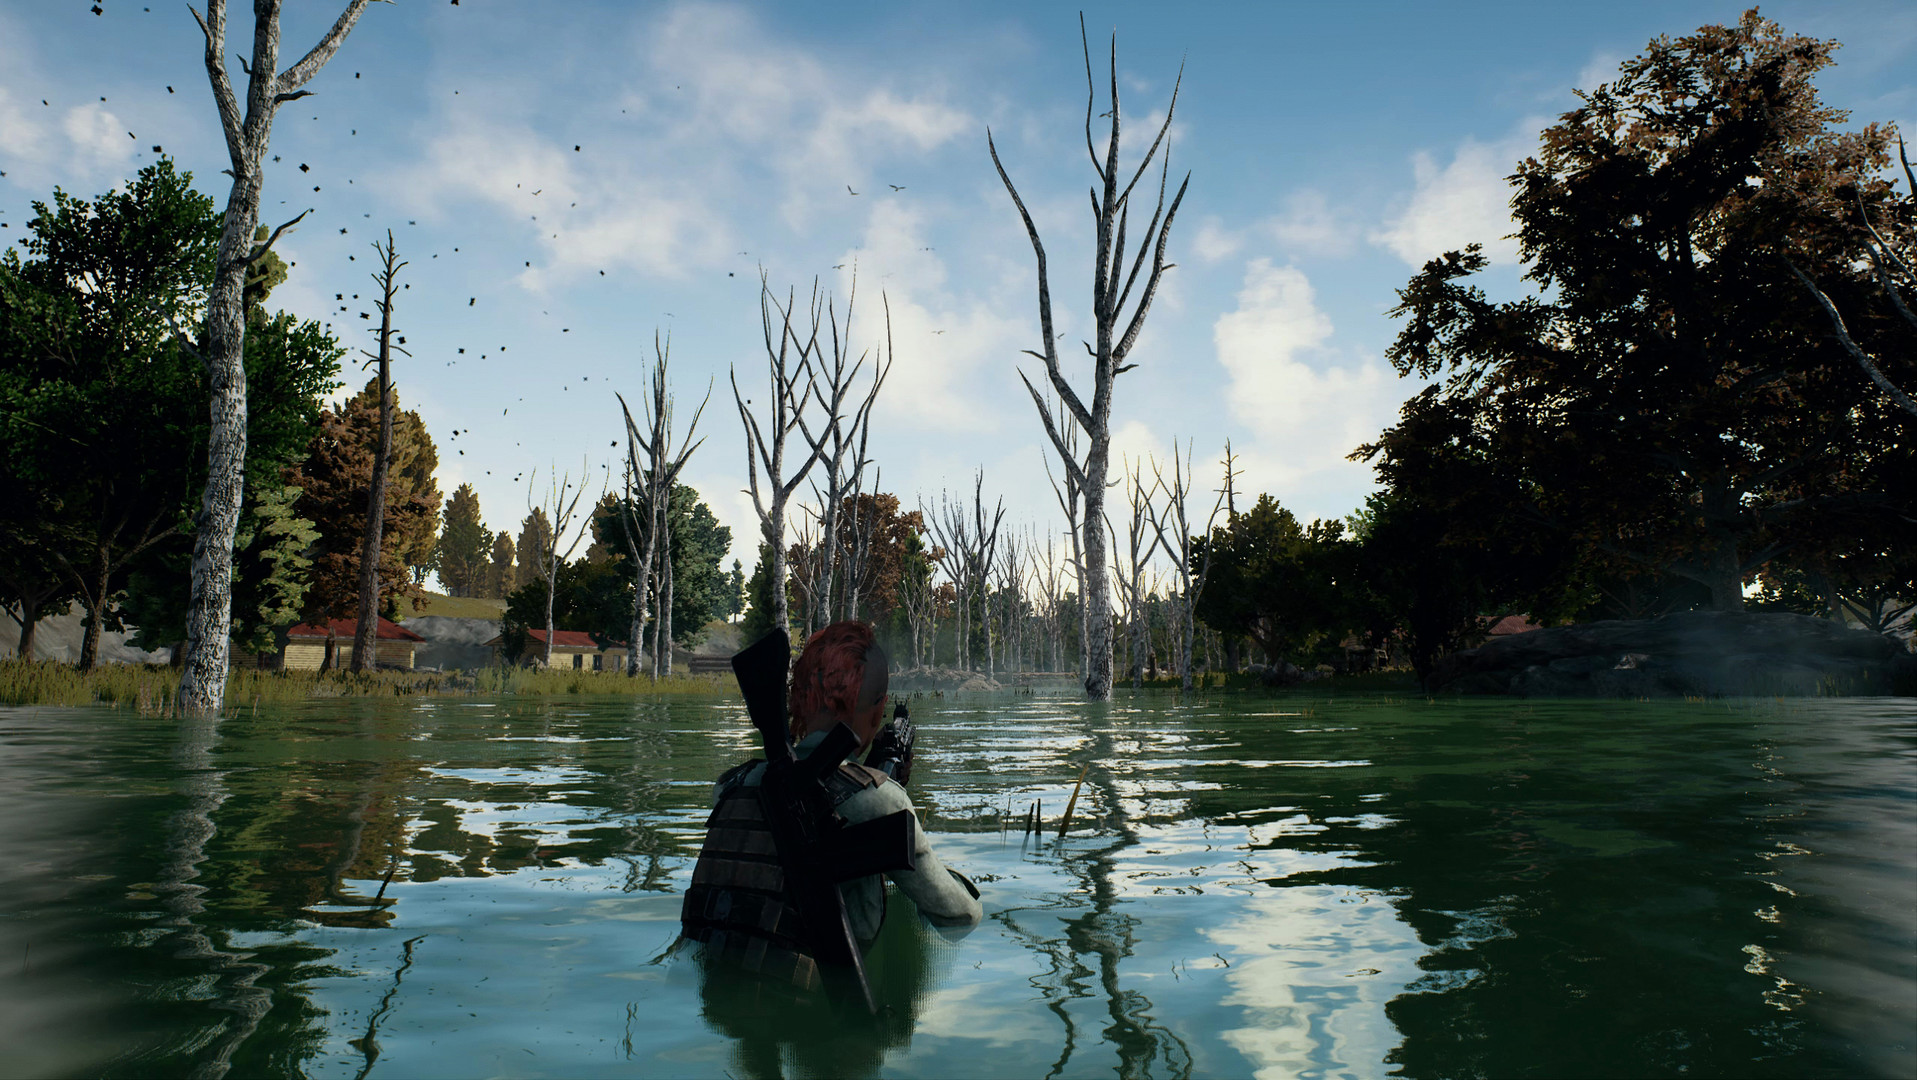 A screenshot from PUBG. The game's immersive environments and mechanics that keep players coming back have led to serious addiction problems among users.